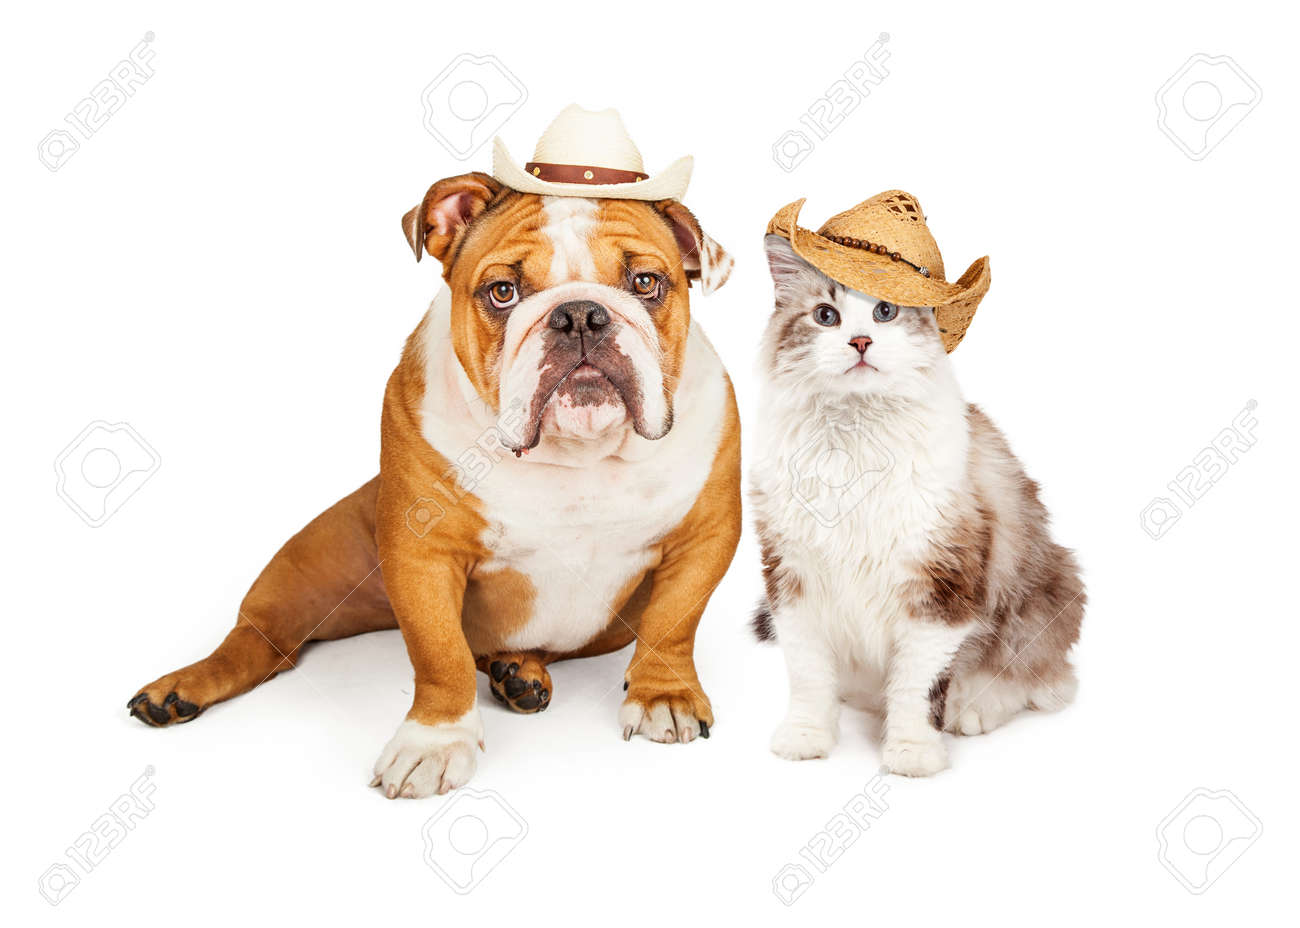 Funny Photo Of An English Bulldog Breed Dog And A Cat Wearing